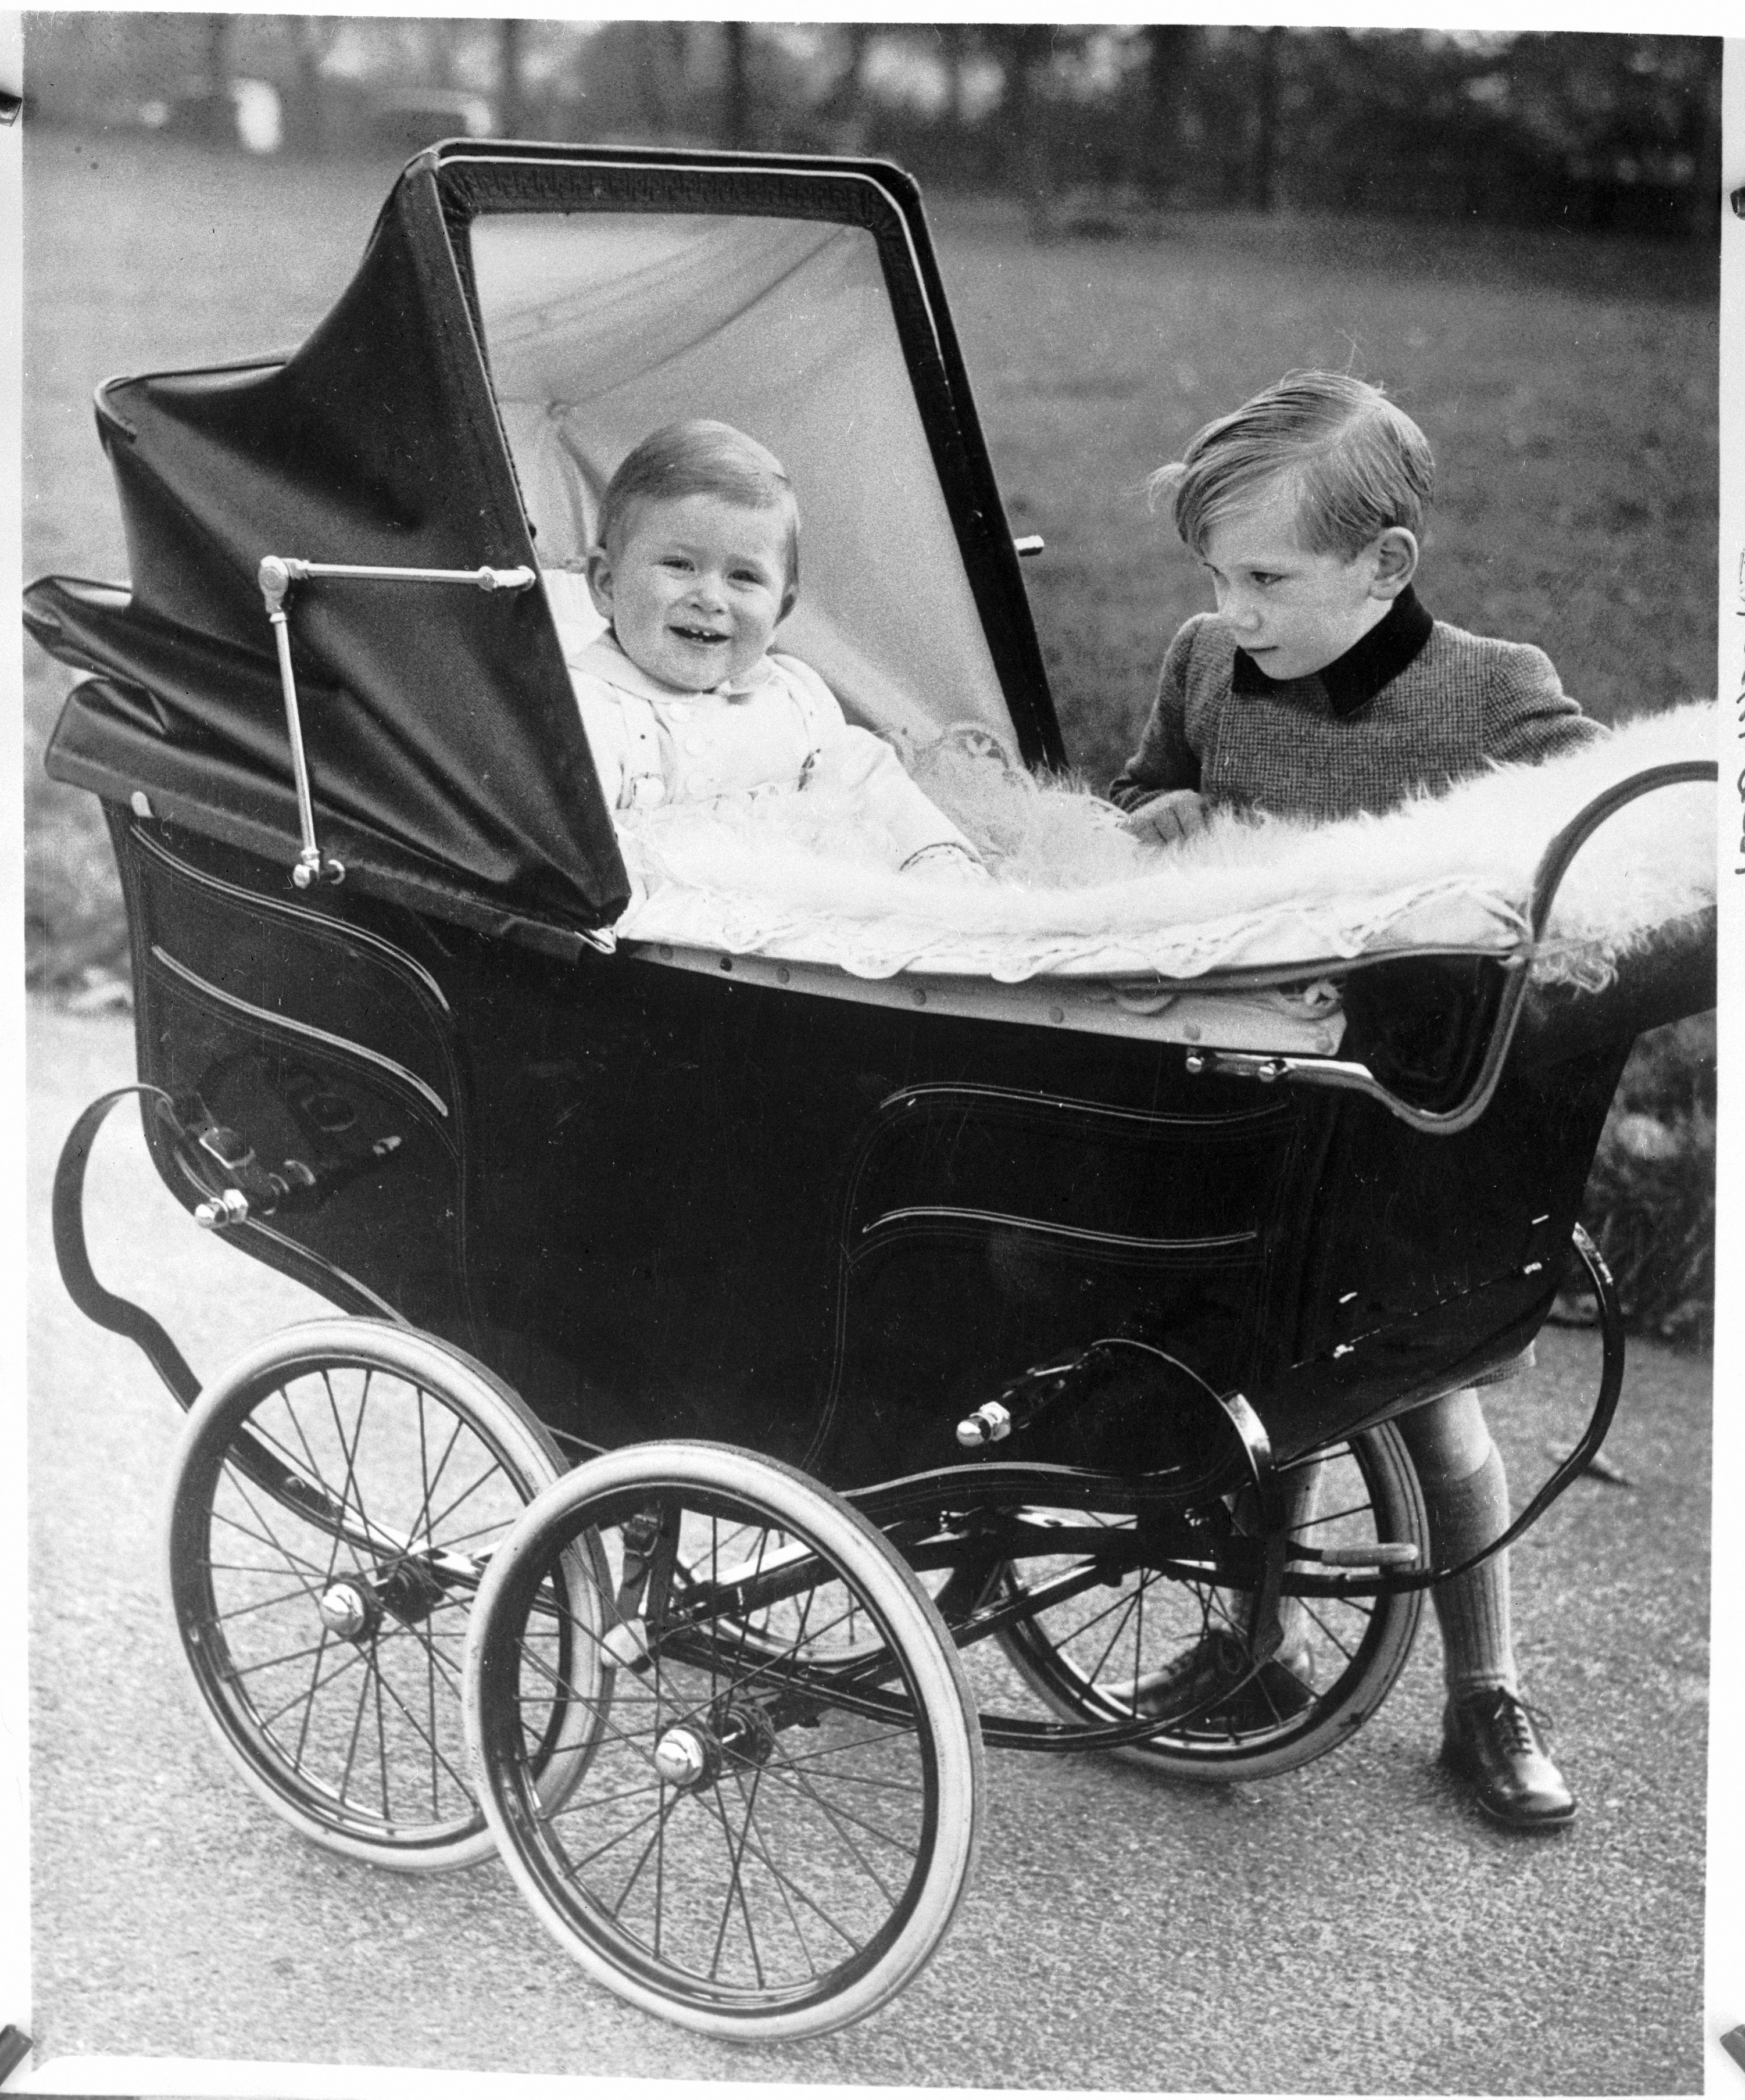 Prince Charles, son of Princess Elizabeth and the Duke of Edinburgh, beams from his pram as the photographer clicks the shutter during an outing in Green Park. The little boy studying the baby is Prince Richard, son of the Duke and Duchess of Gloucester an. (Photo by Bettmann/Corbis/Getty Images)